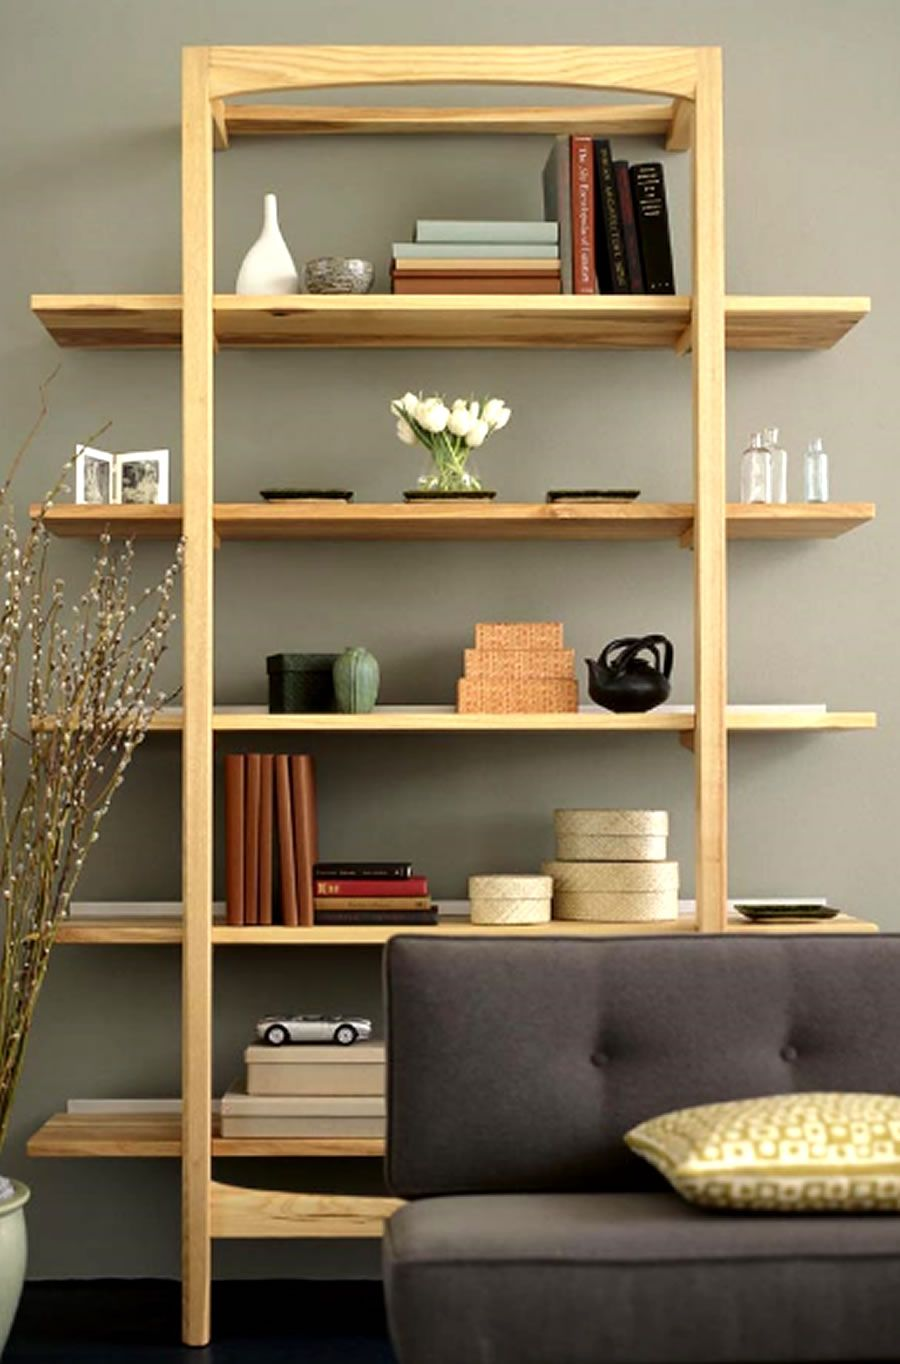 Office shelves modern luxury office shelves storage Shelves design ideas